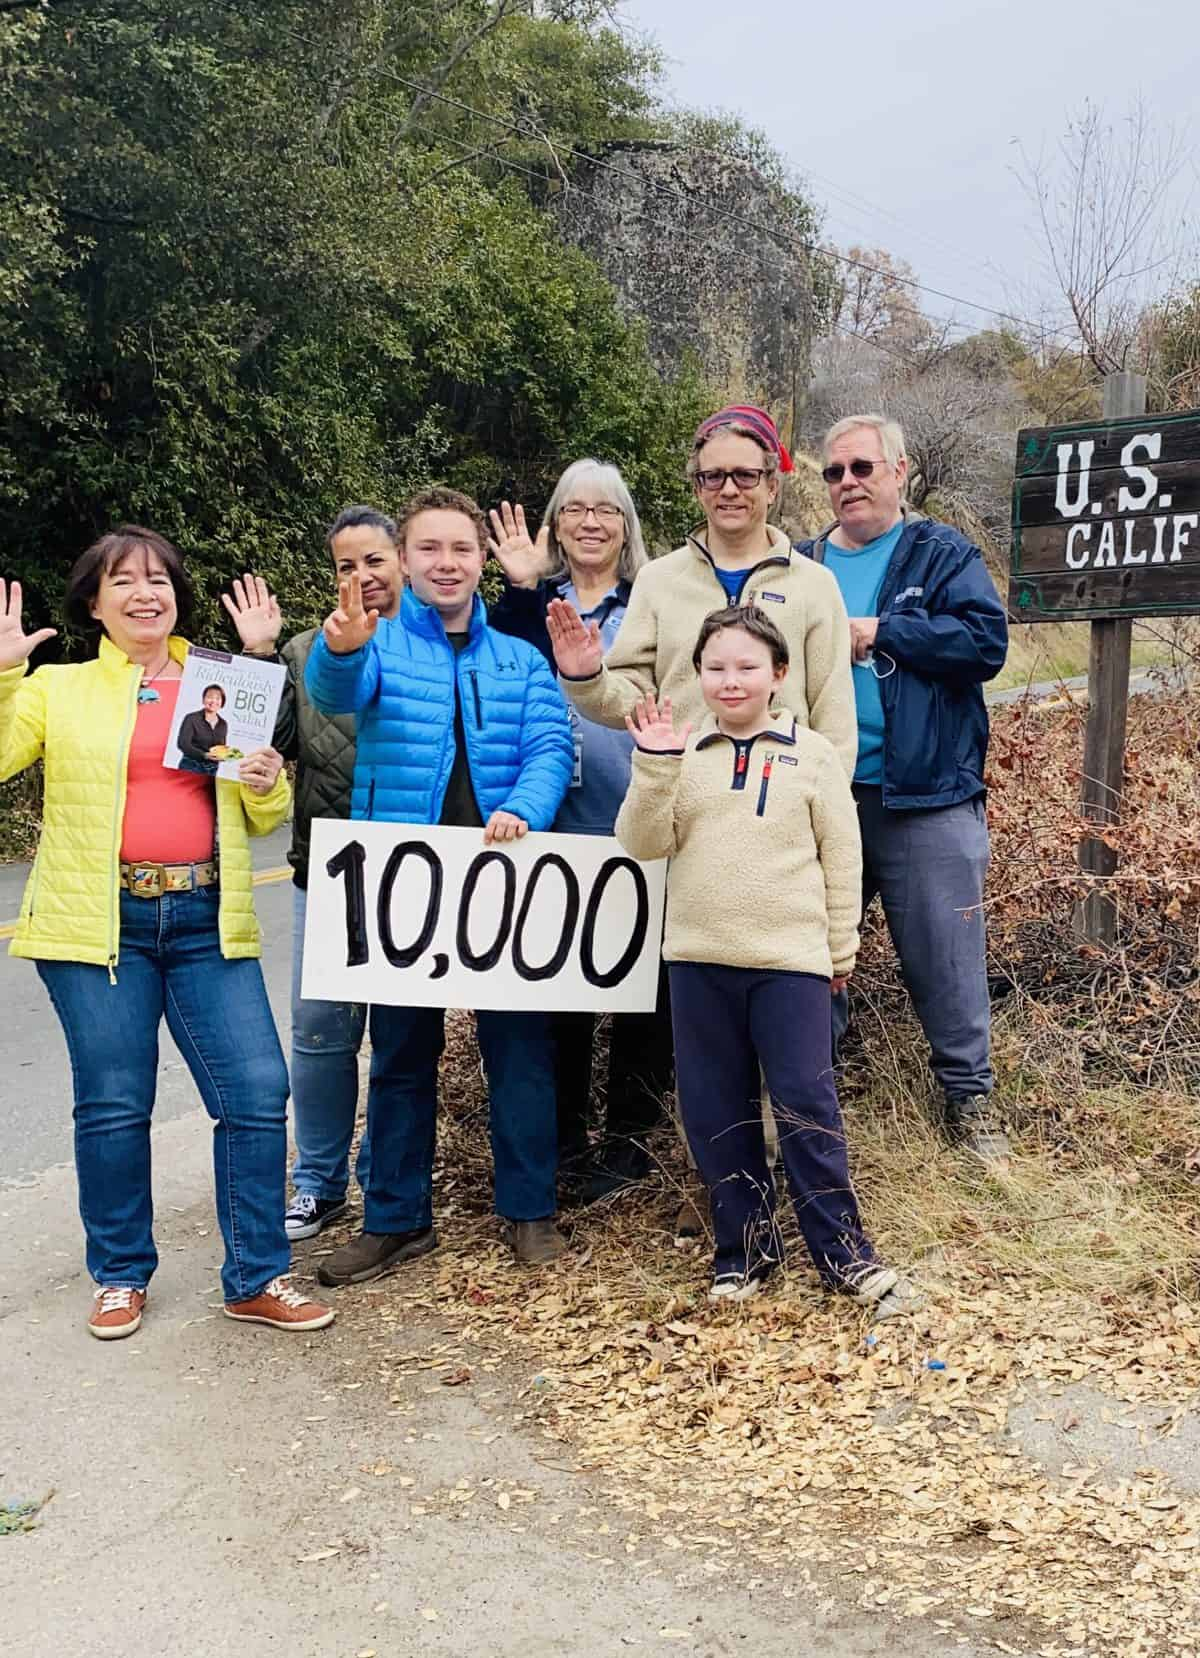 """Amanda Rose and the team that helped her ship 10,000 books, holding a sign that says """"10,000)"""